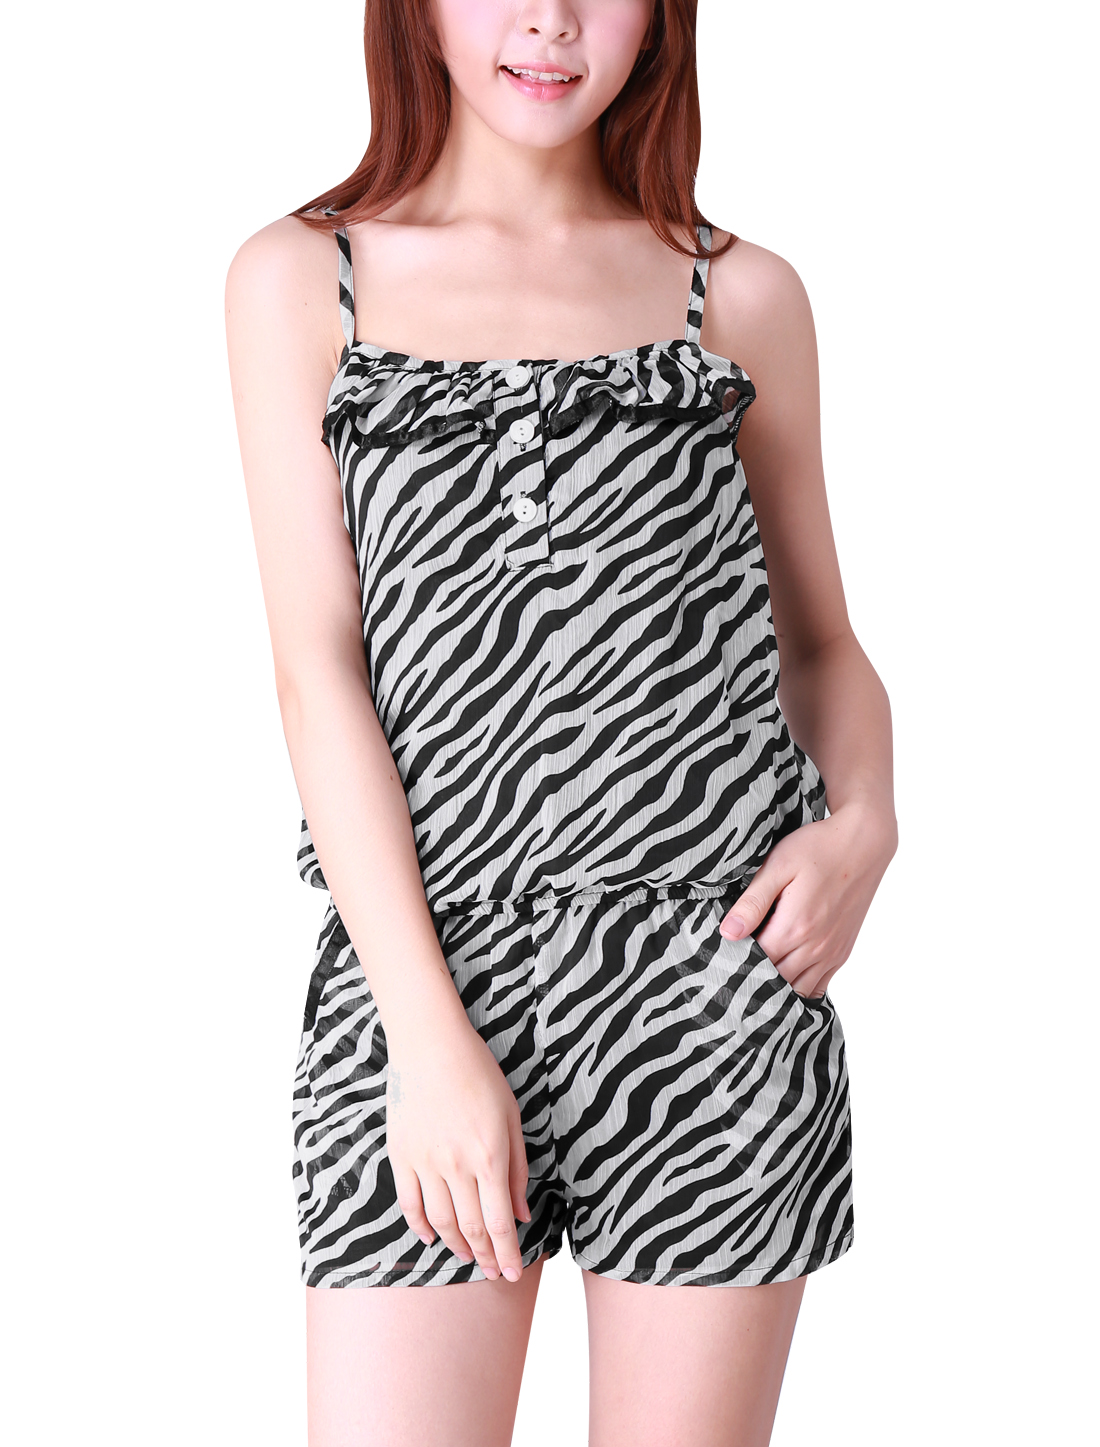 Women Chic Black White Zebra Pattern Elastic Waist Rompers XL